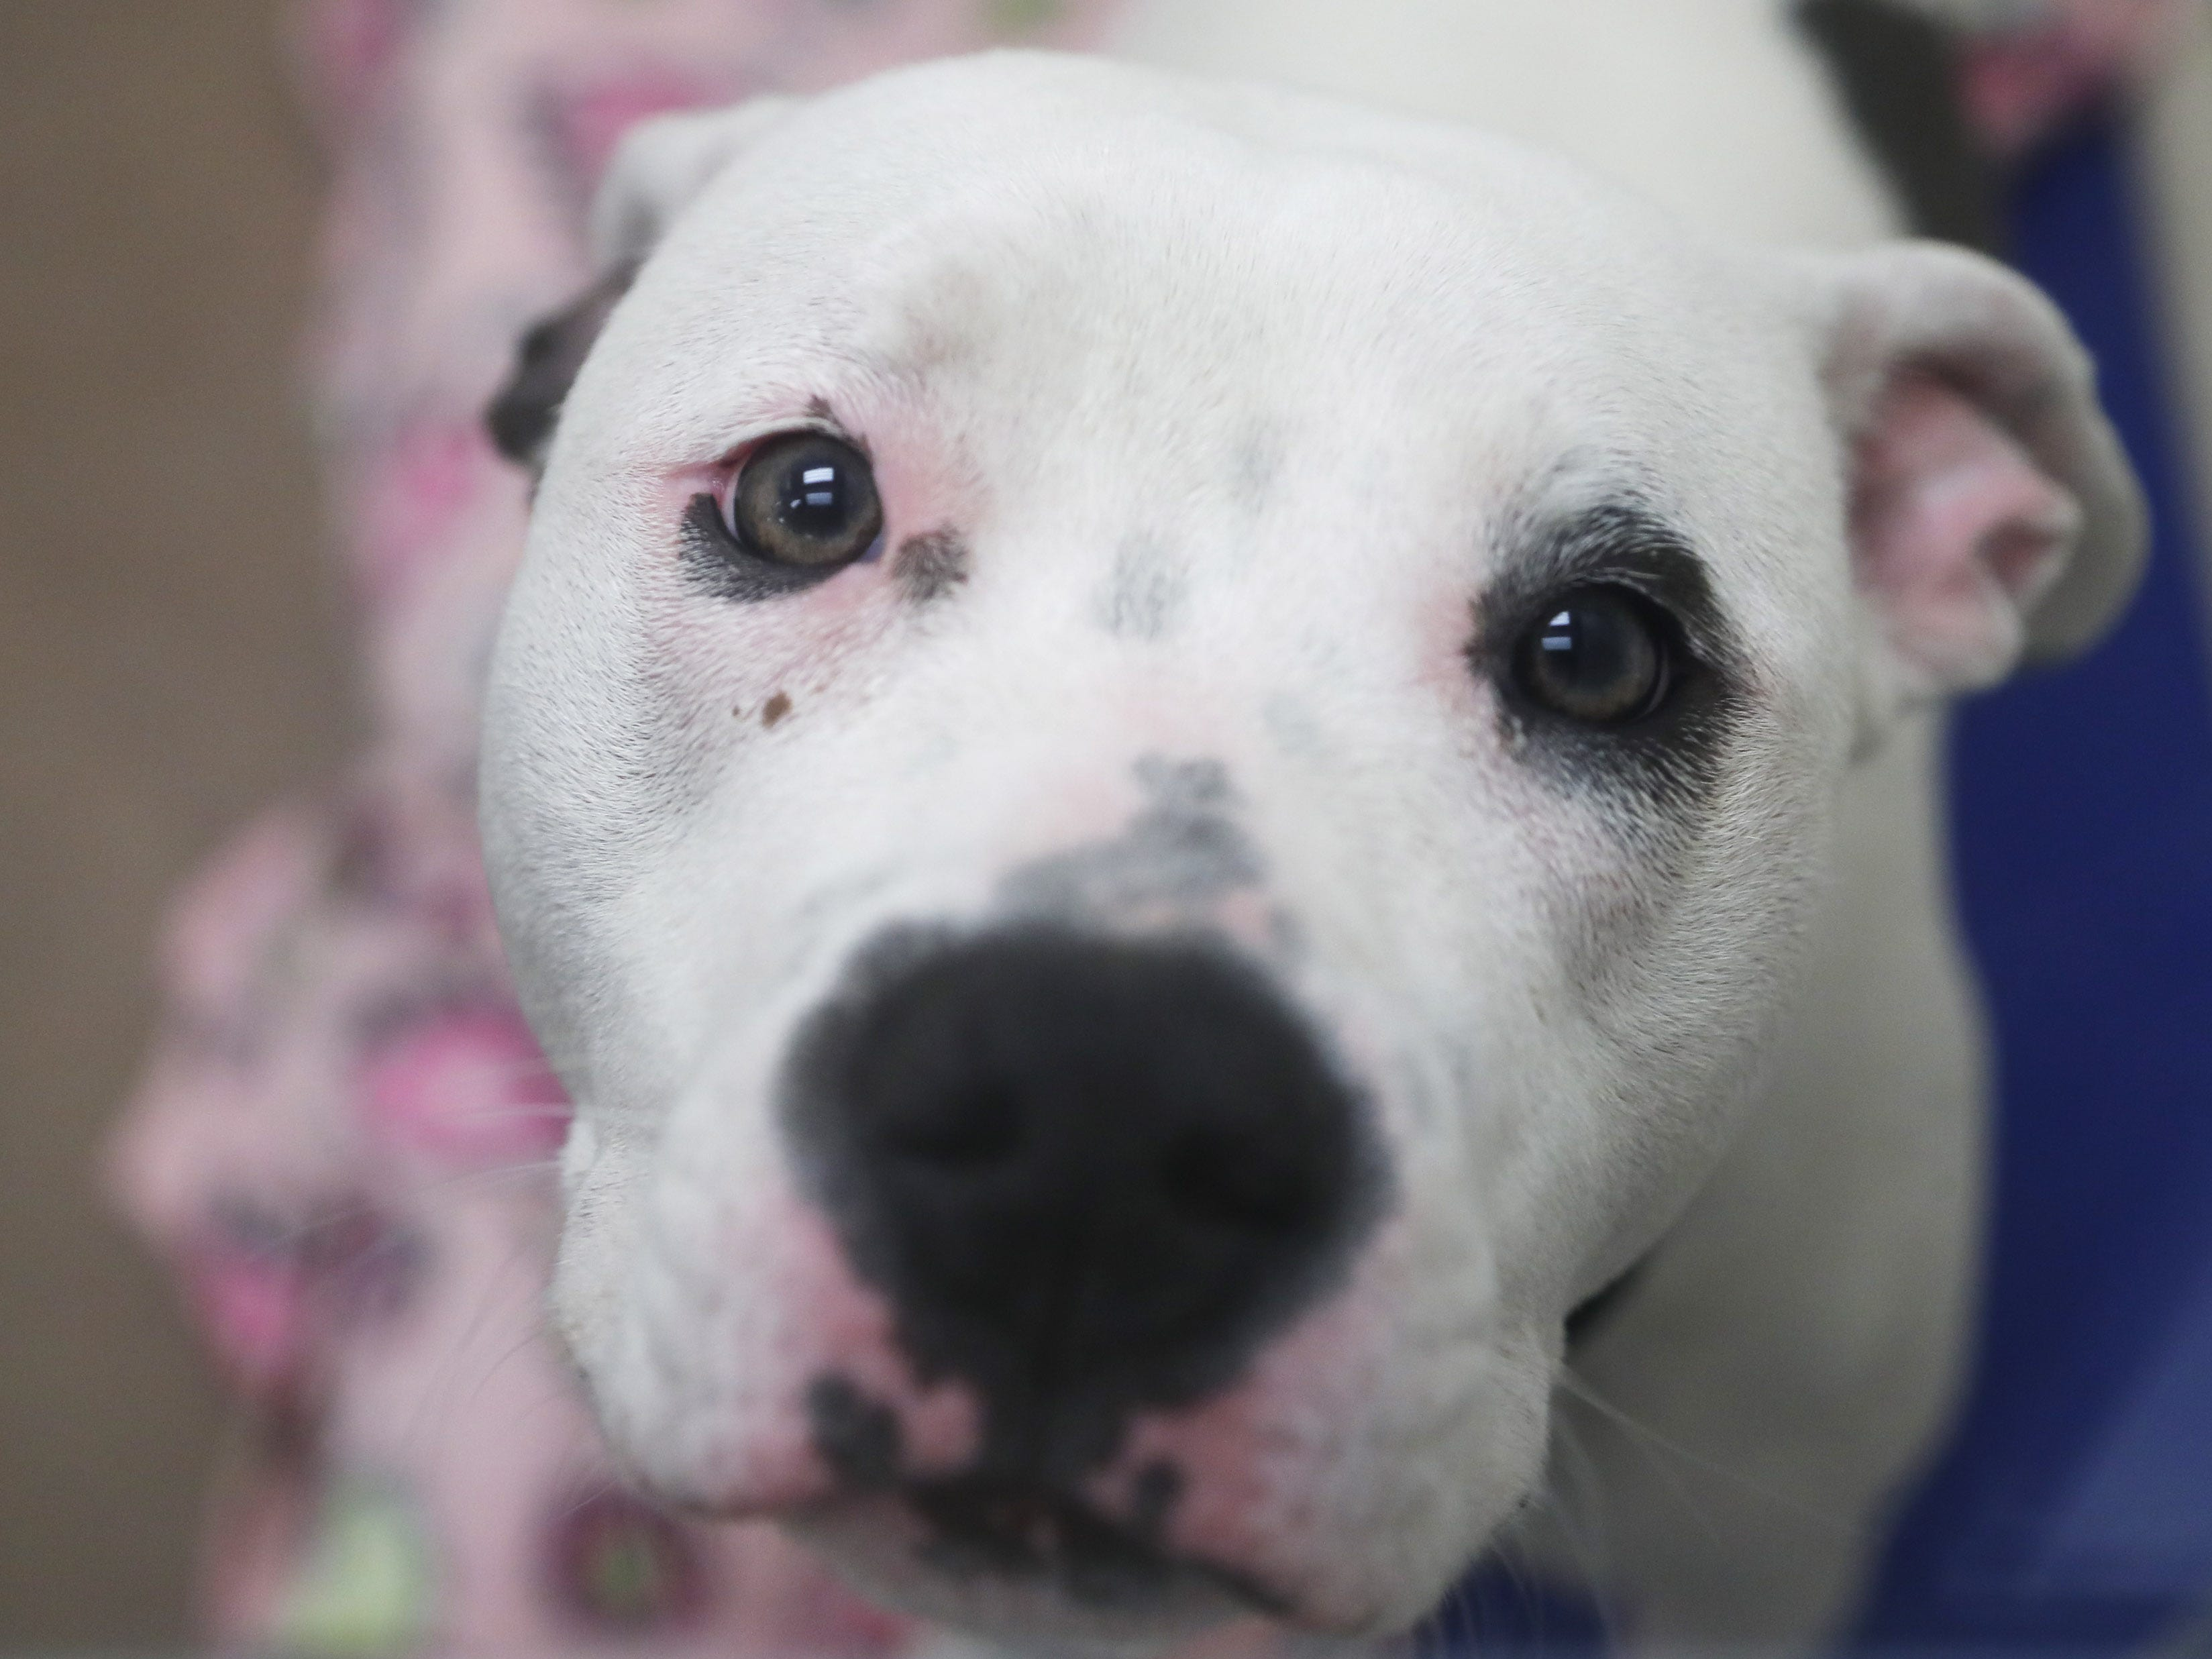 Mia, an American pit bull terrier, waits to be adopted at the Arizona Humane Society in Phoenix on April 1, 2019. More than 8,000 dogs and cats have been surrendered in Maricopa County since the start of the year.